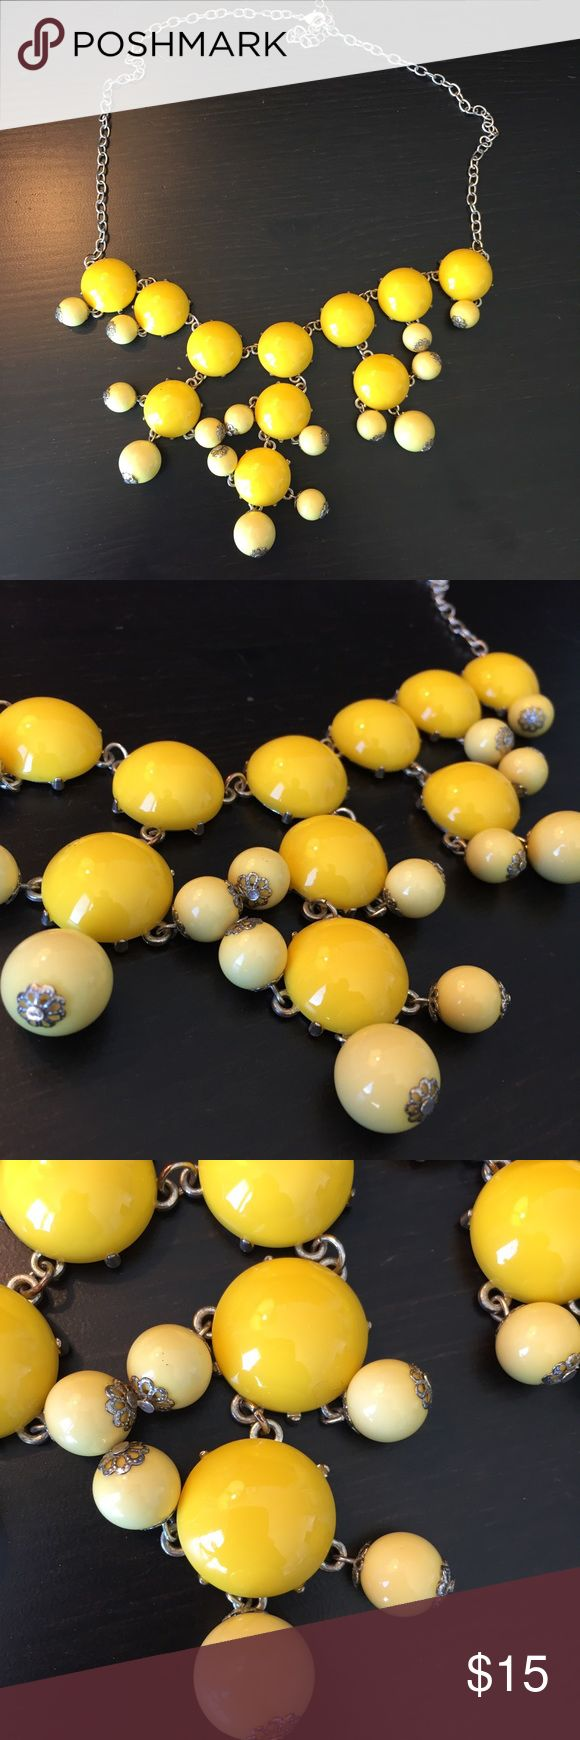 JCrew like Bubble Necklace Not actually JCrew just using the brand for exposure. Yellow bubble necklace two toned colored with a bolder yellow and lighter one. J. Crew Jewelry Necklaces